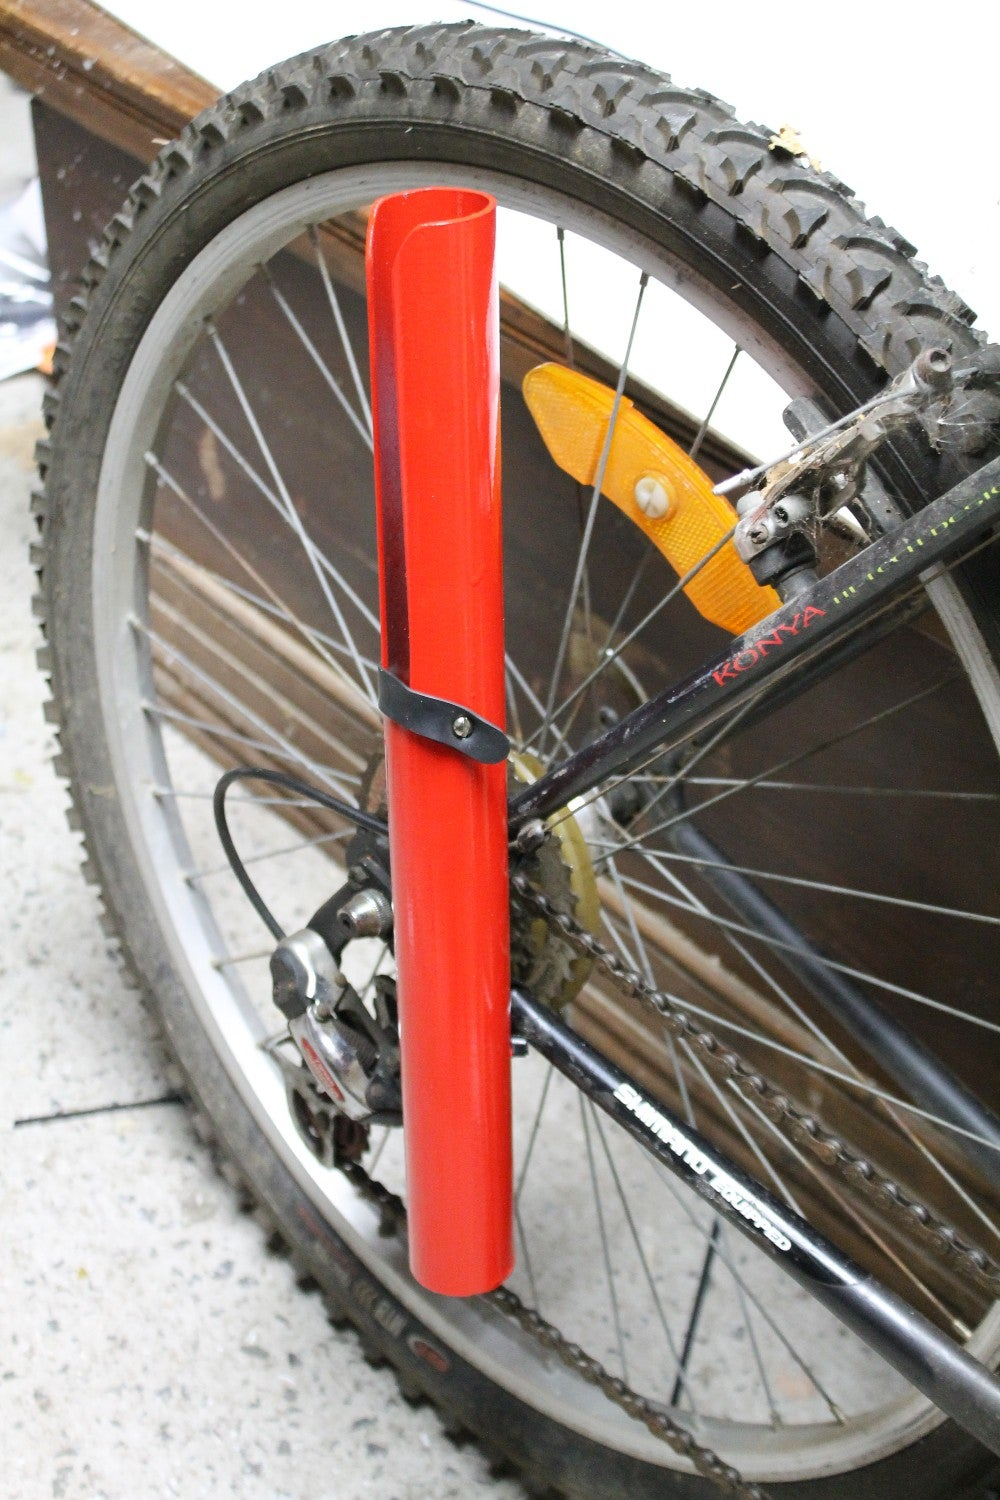 Attaching the Rod Holder to the Bike Frame